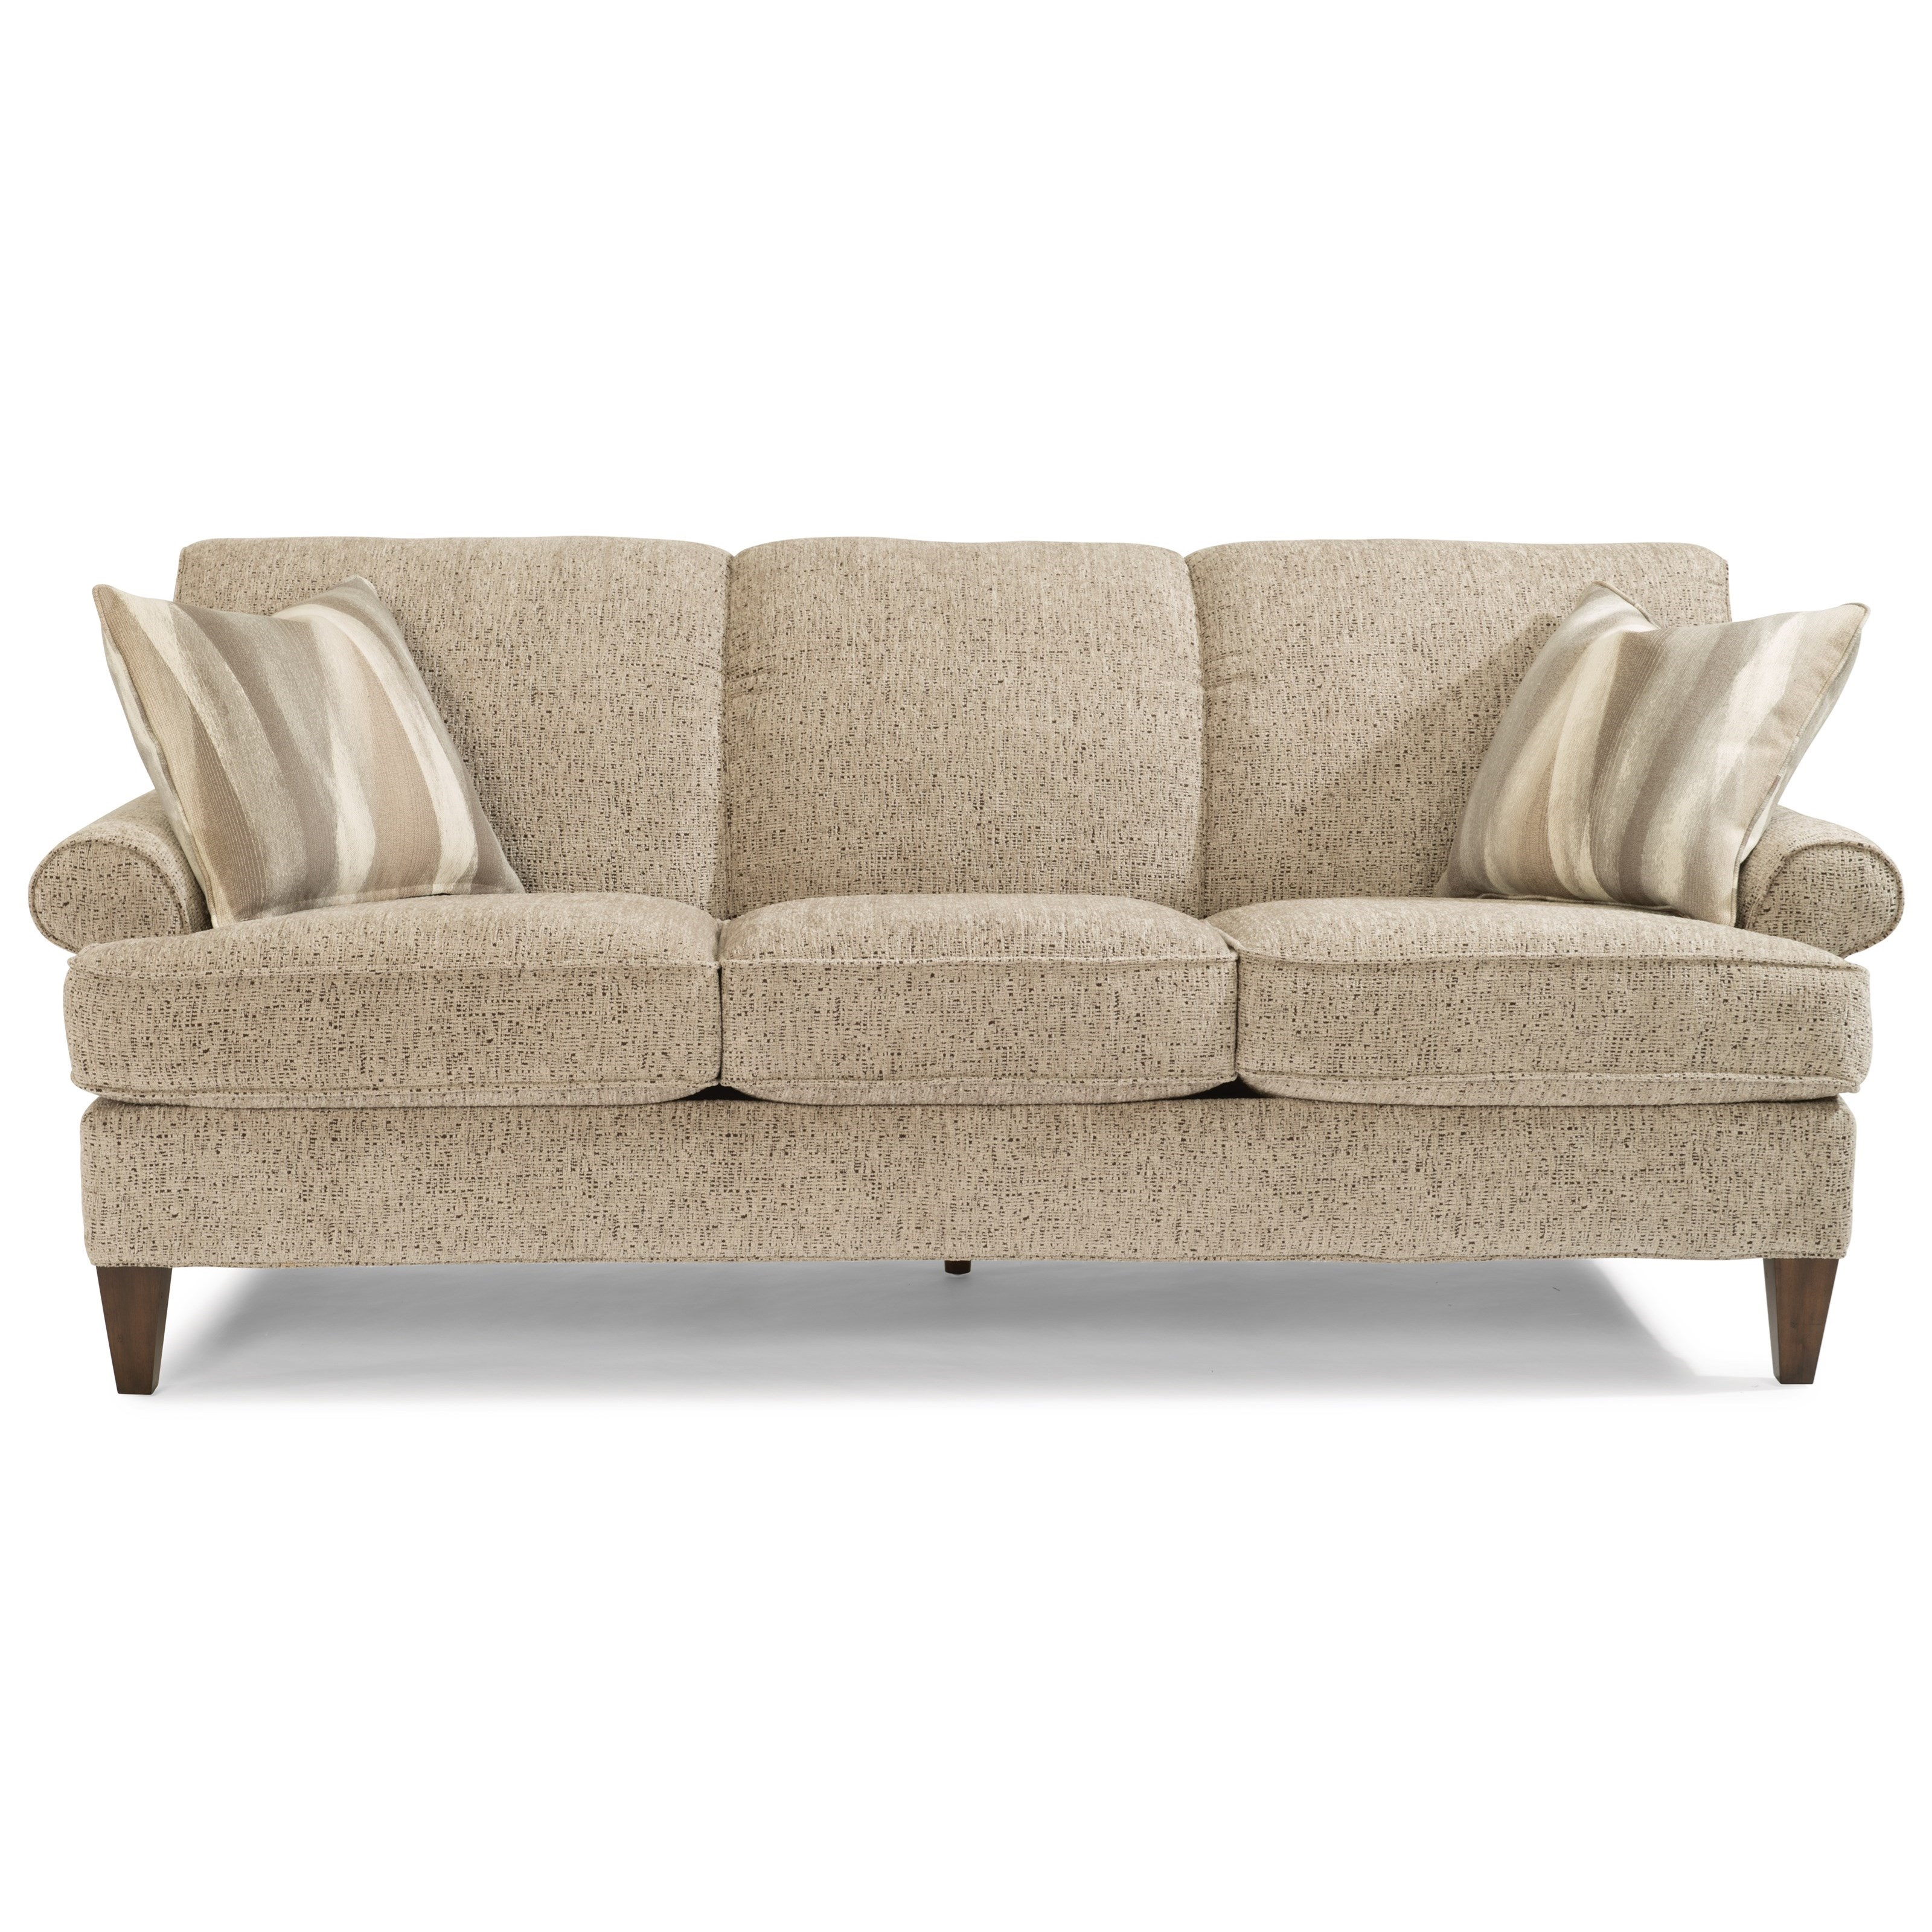 Flexsteel Venture Transitional Sofa With Rolled Arms And